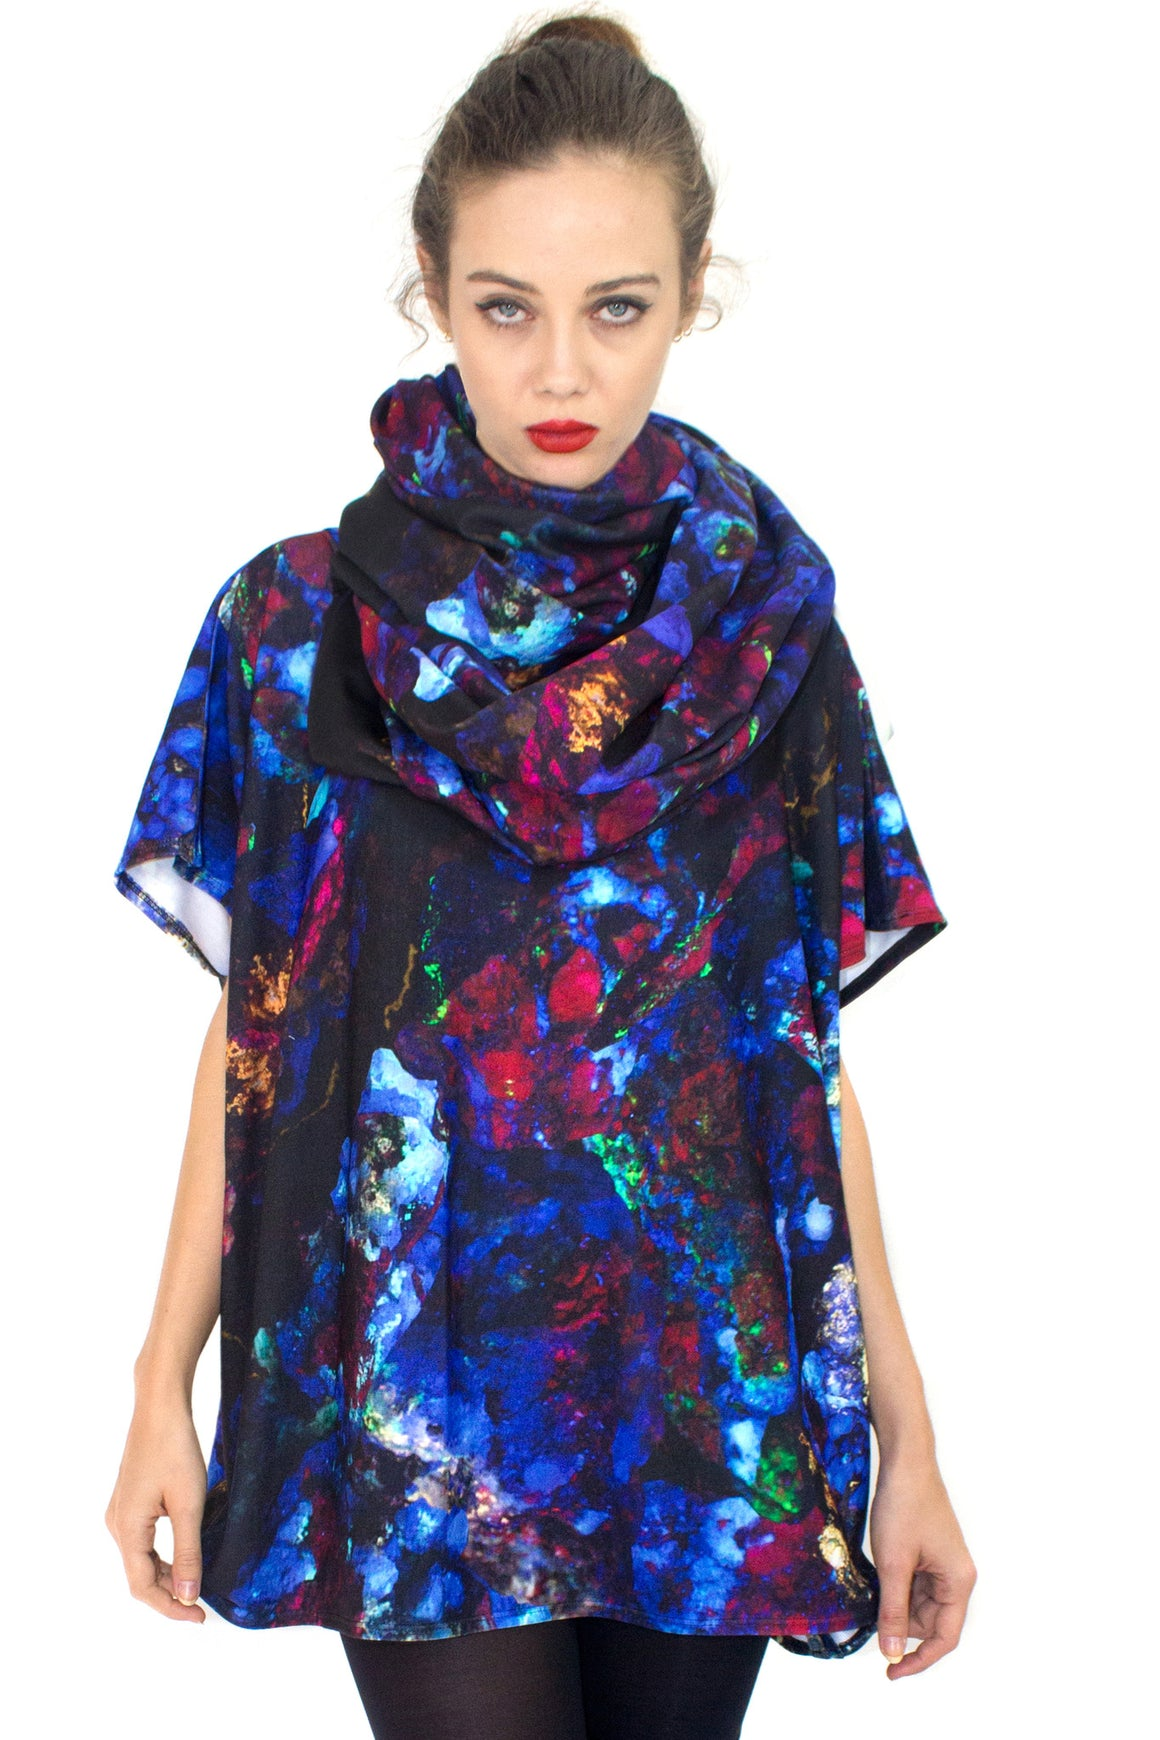 Fluorescent Circle Scarf, Shadowplay New York, Galaxy Print Clothing